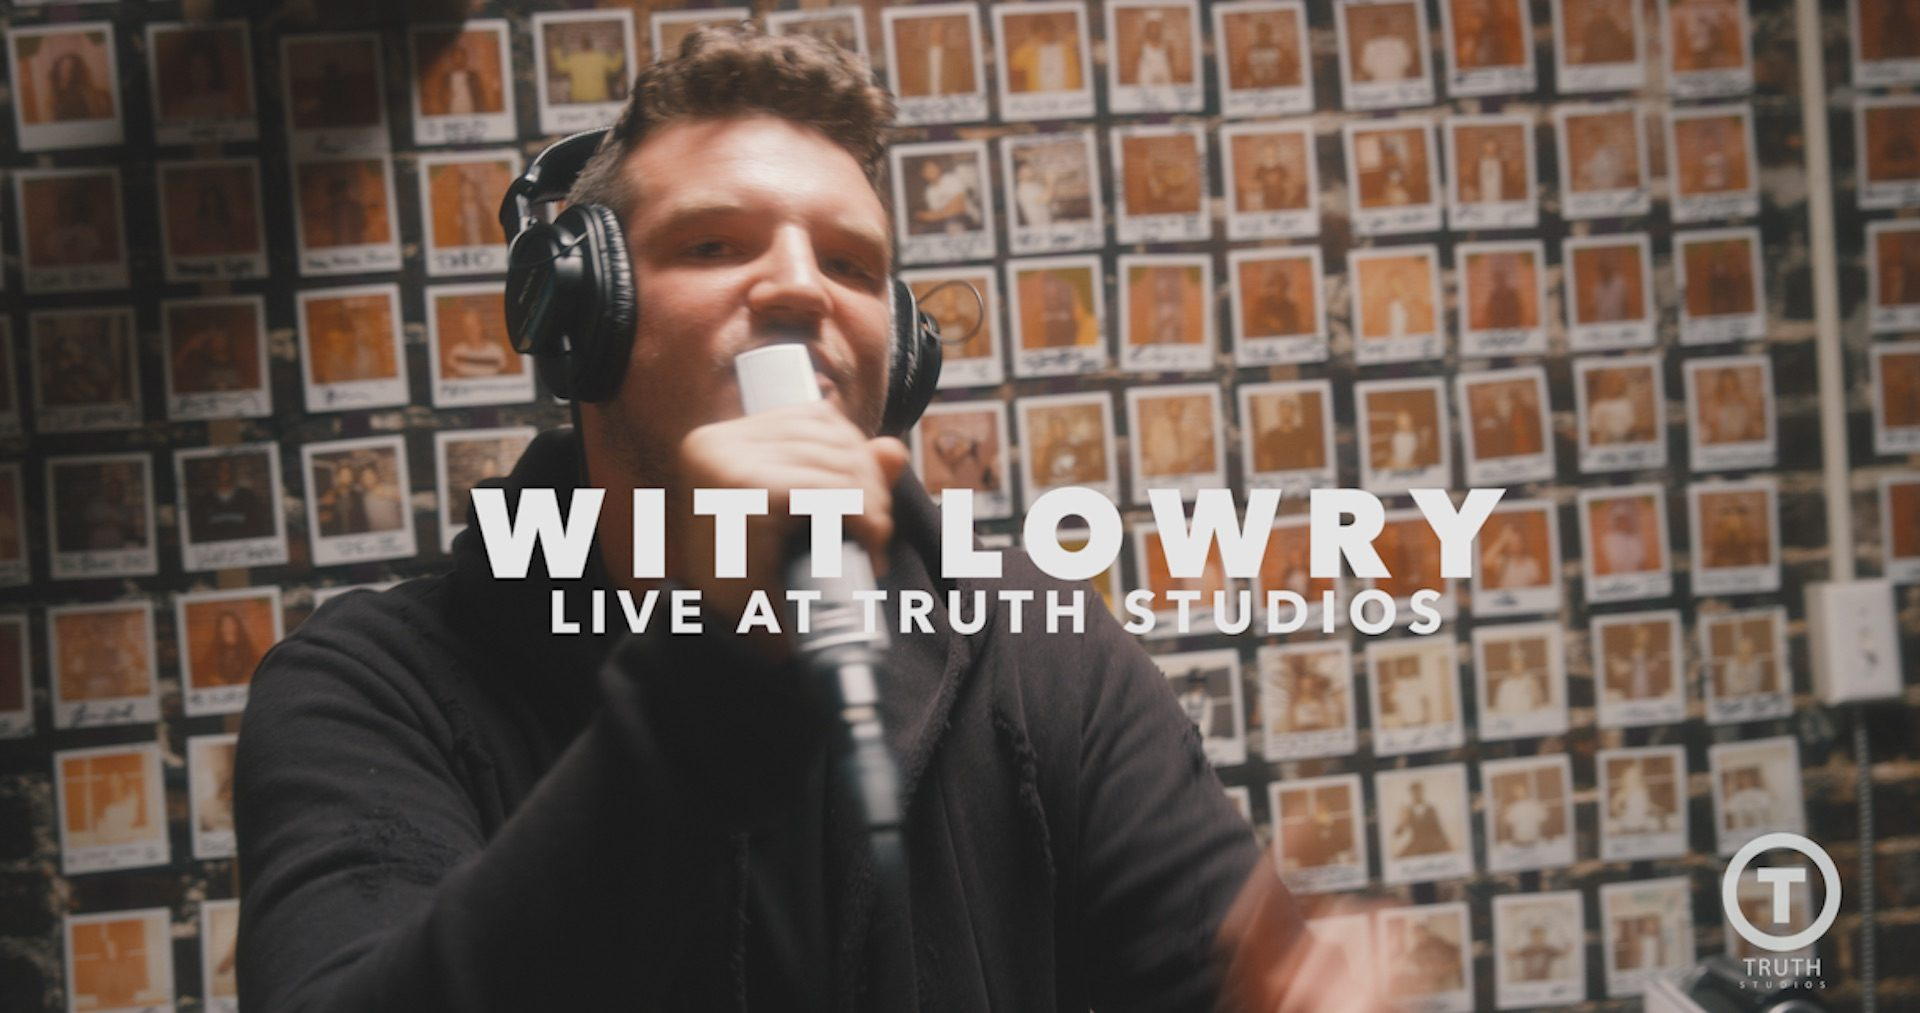 Witt Lowry Live at Truth Studios